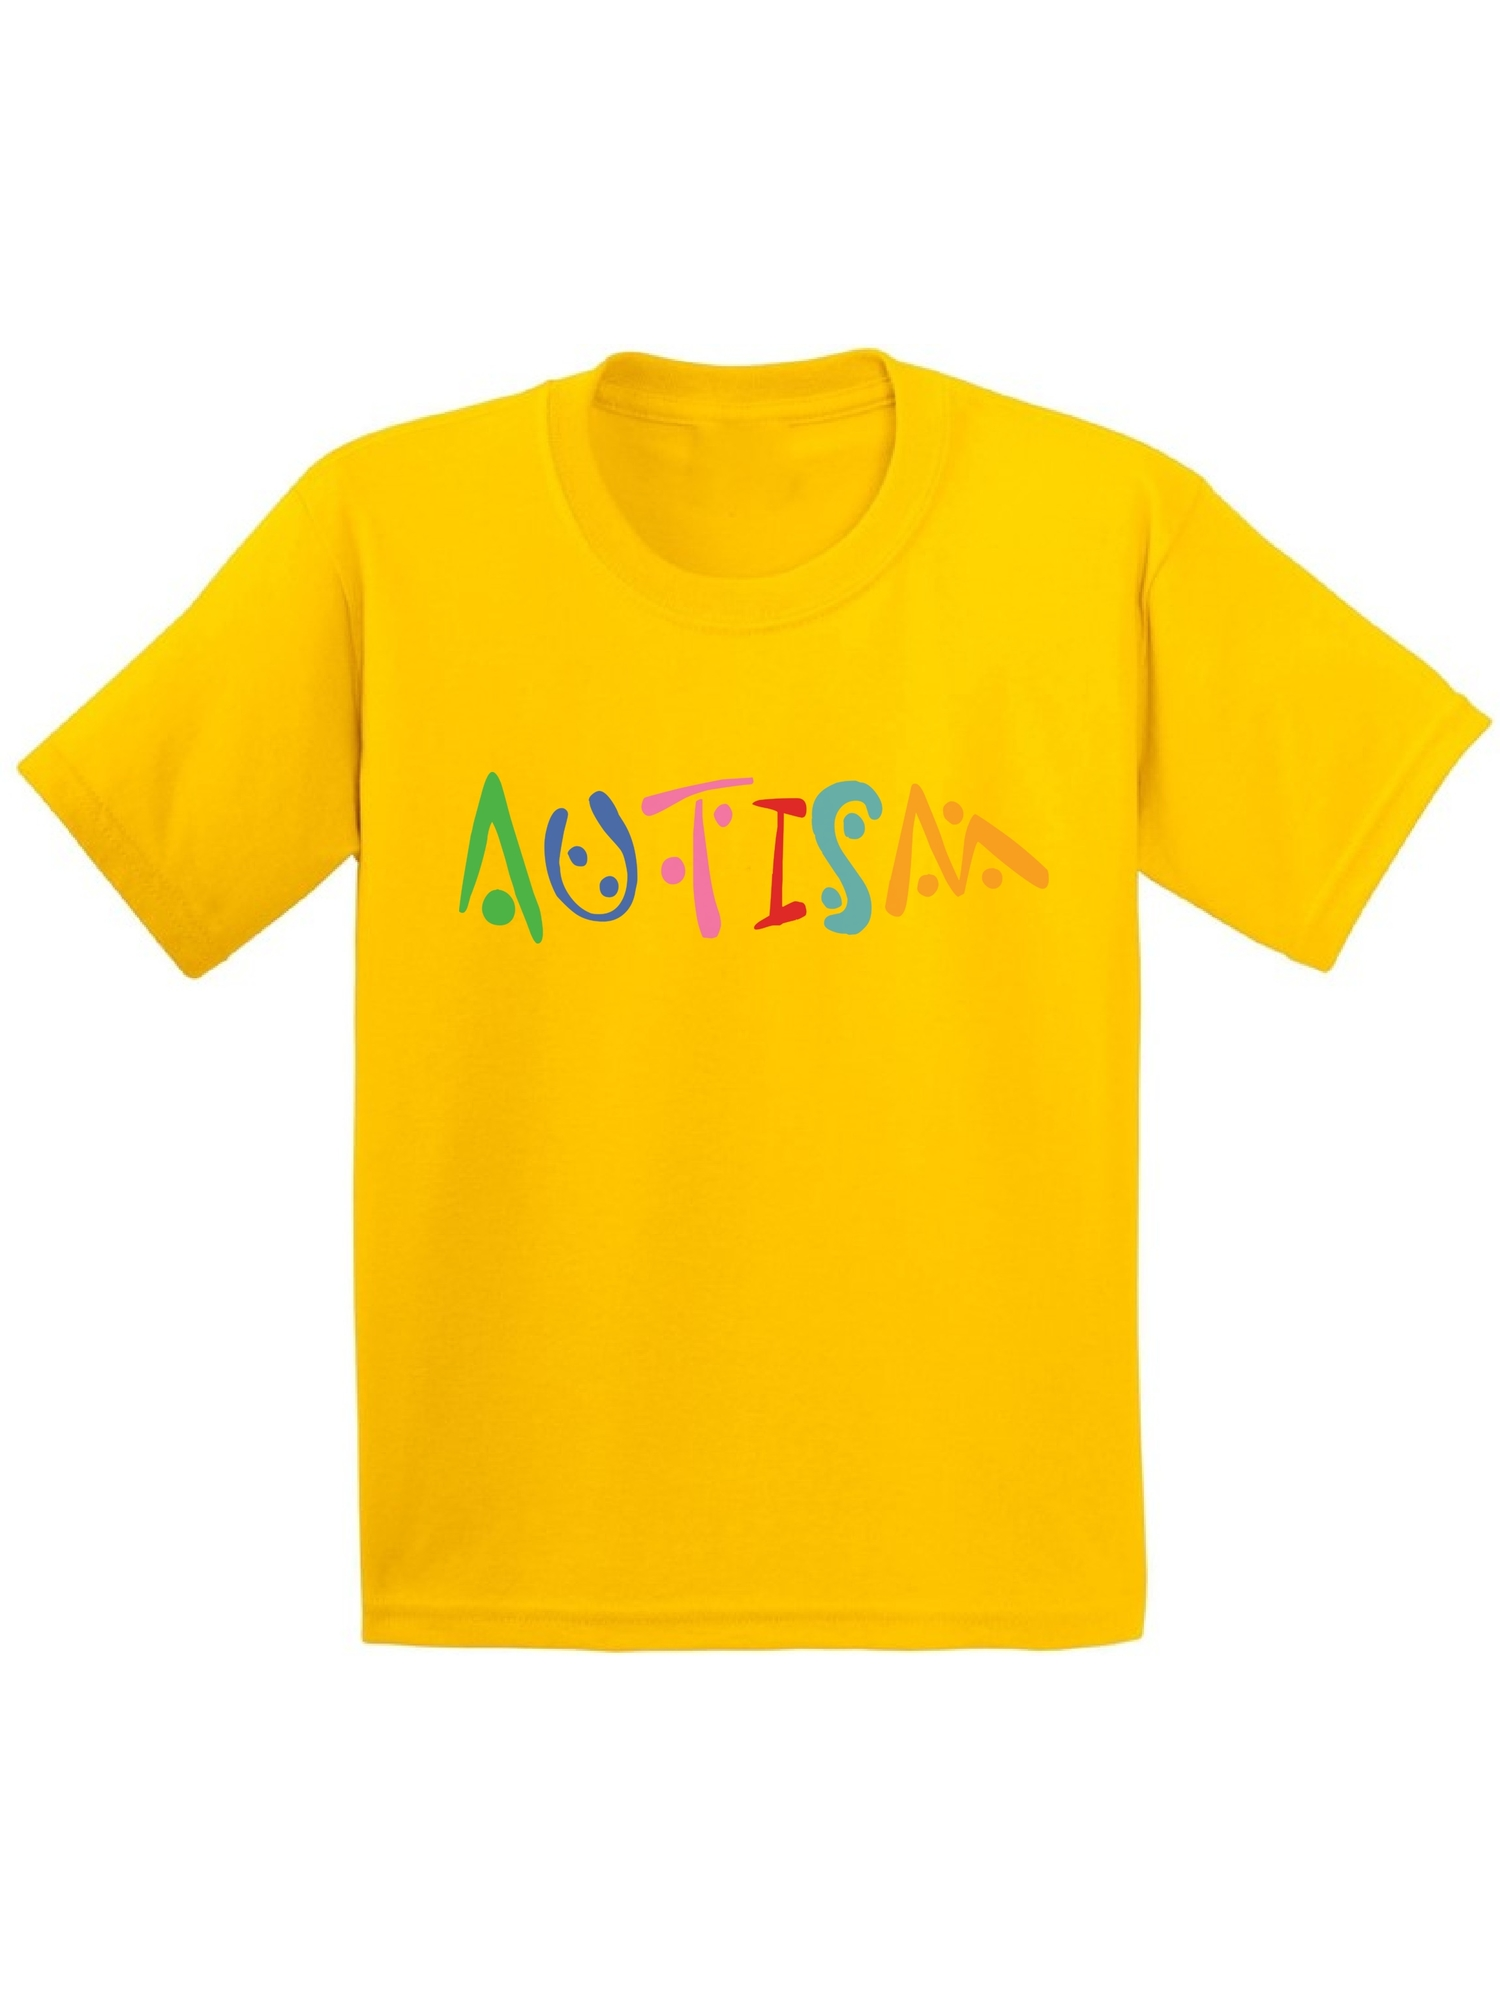 Awkward Styles Youth Autism Autistic Support Graphic Youth Kids T-shirt Tops for Autism Awareness